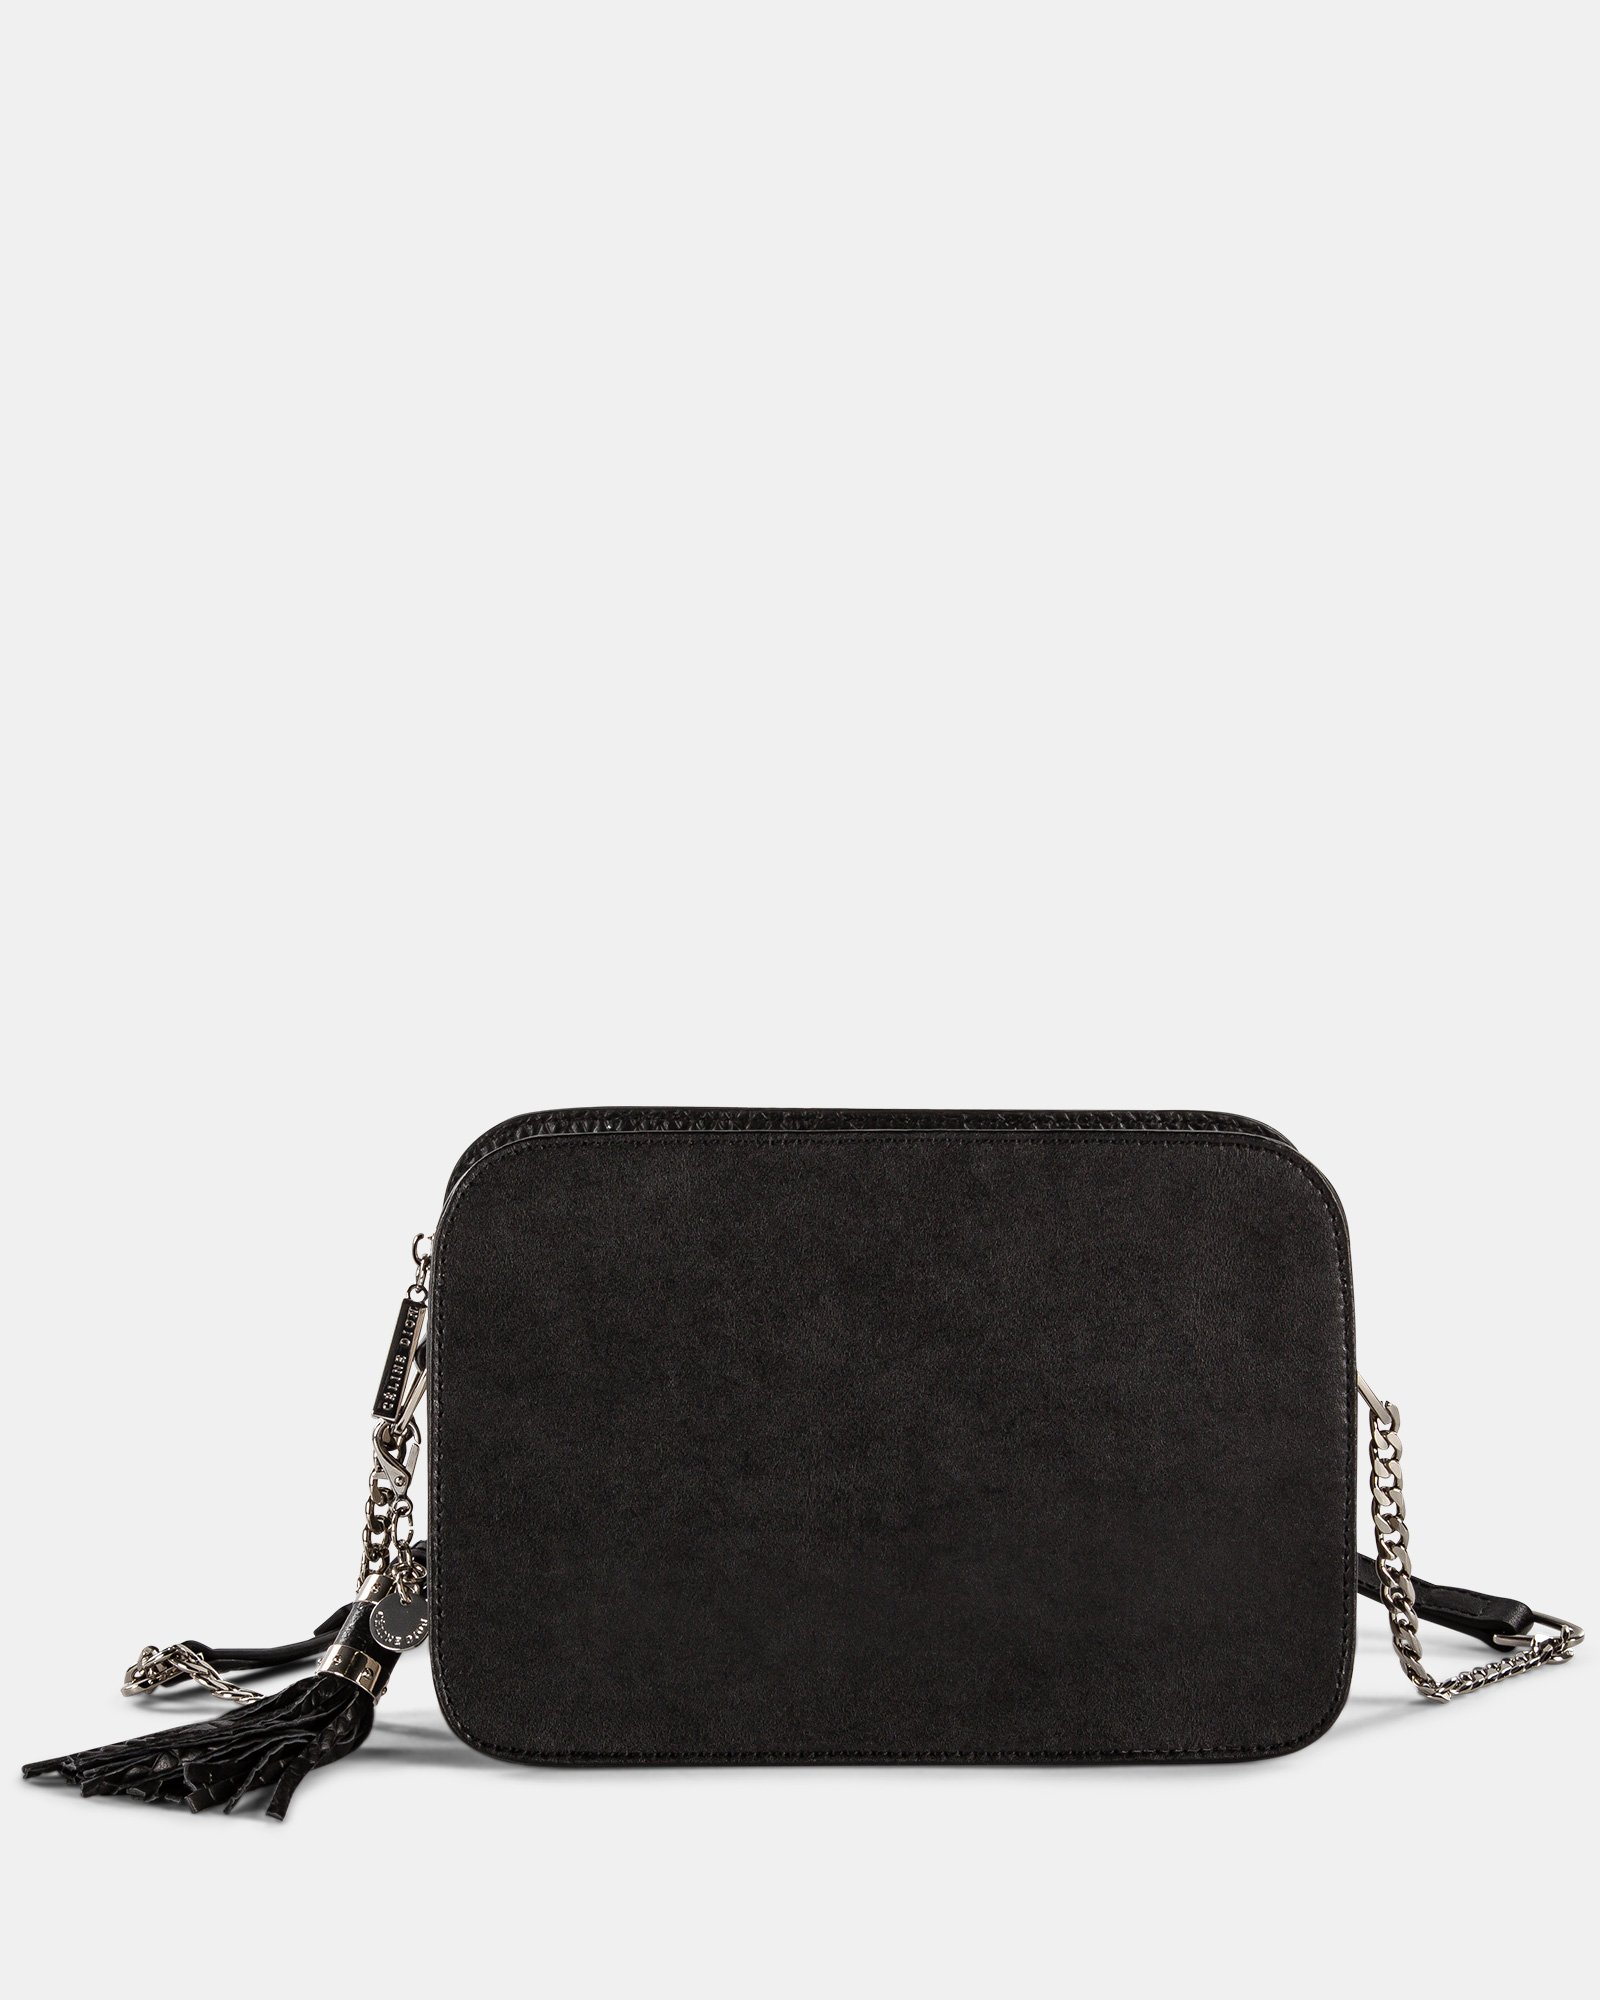 ELEGY - LEATHER CROSSBODY with Side pockets with magnetic closure - Black/Sand - Céline Dion - Zoom